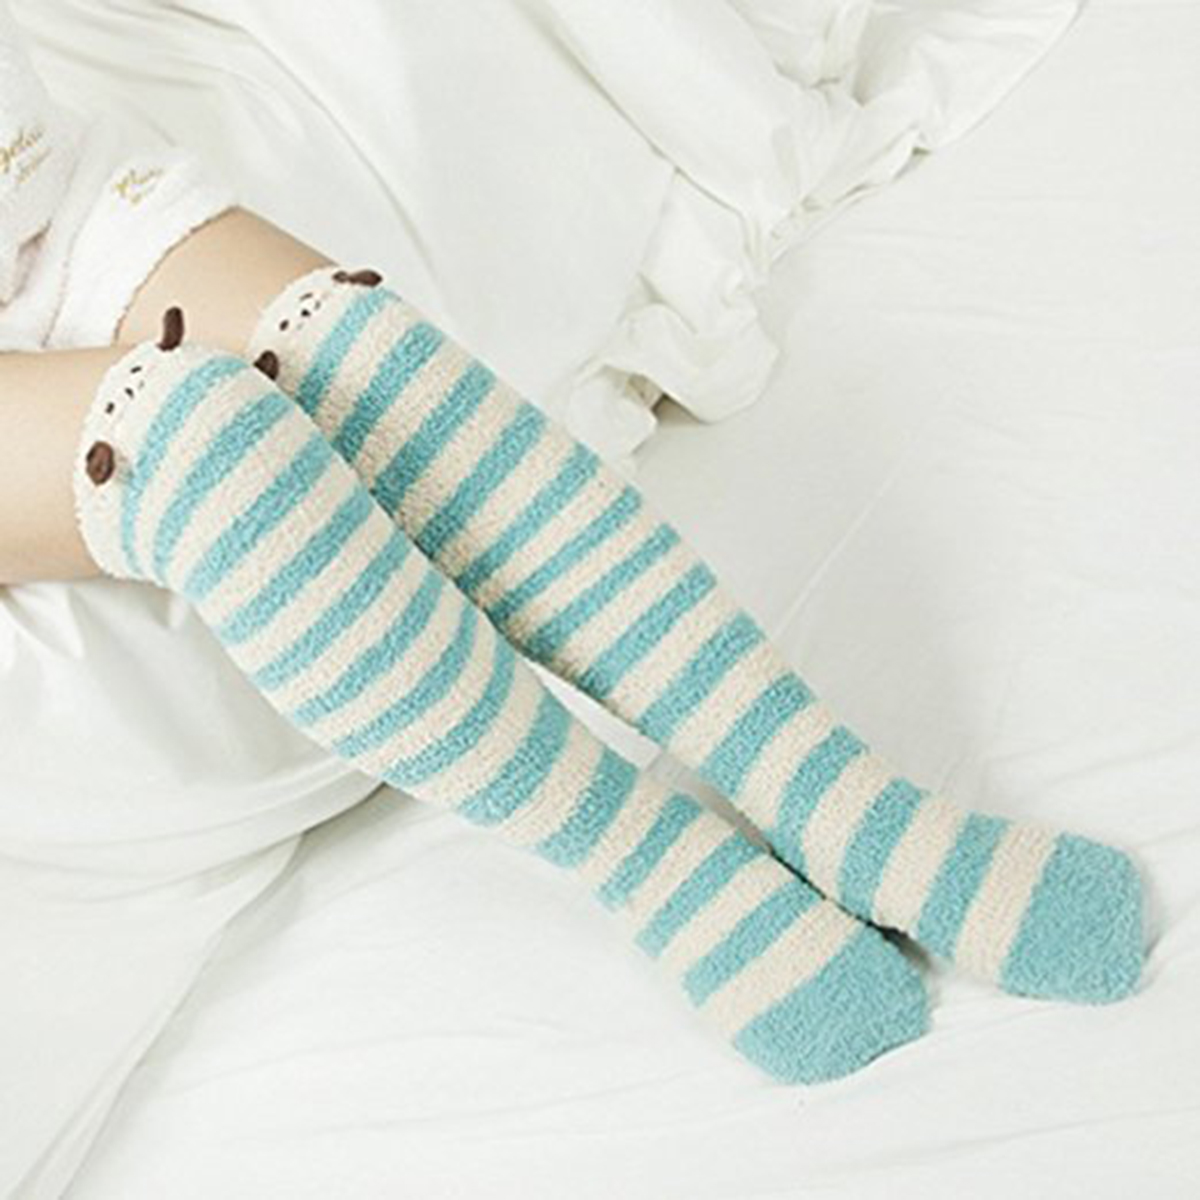 2018 <font><b>Kawaii</b></font> Japanese Animal Printed <font><b>Knee</b></font> <font><b>Socks</b></font> Striped Cute Lovely Long Thigh High <font><b>Socks</b></font> Compression Winter Warm Medias <font><b>Sock</b></font> image